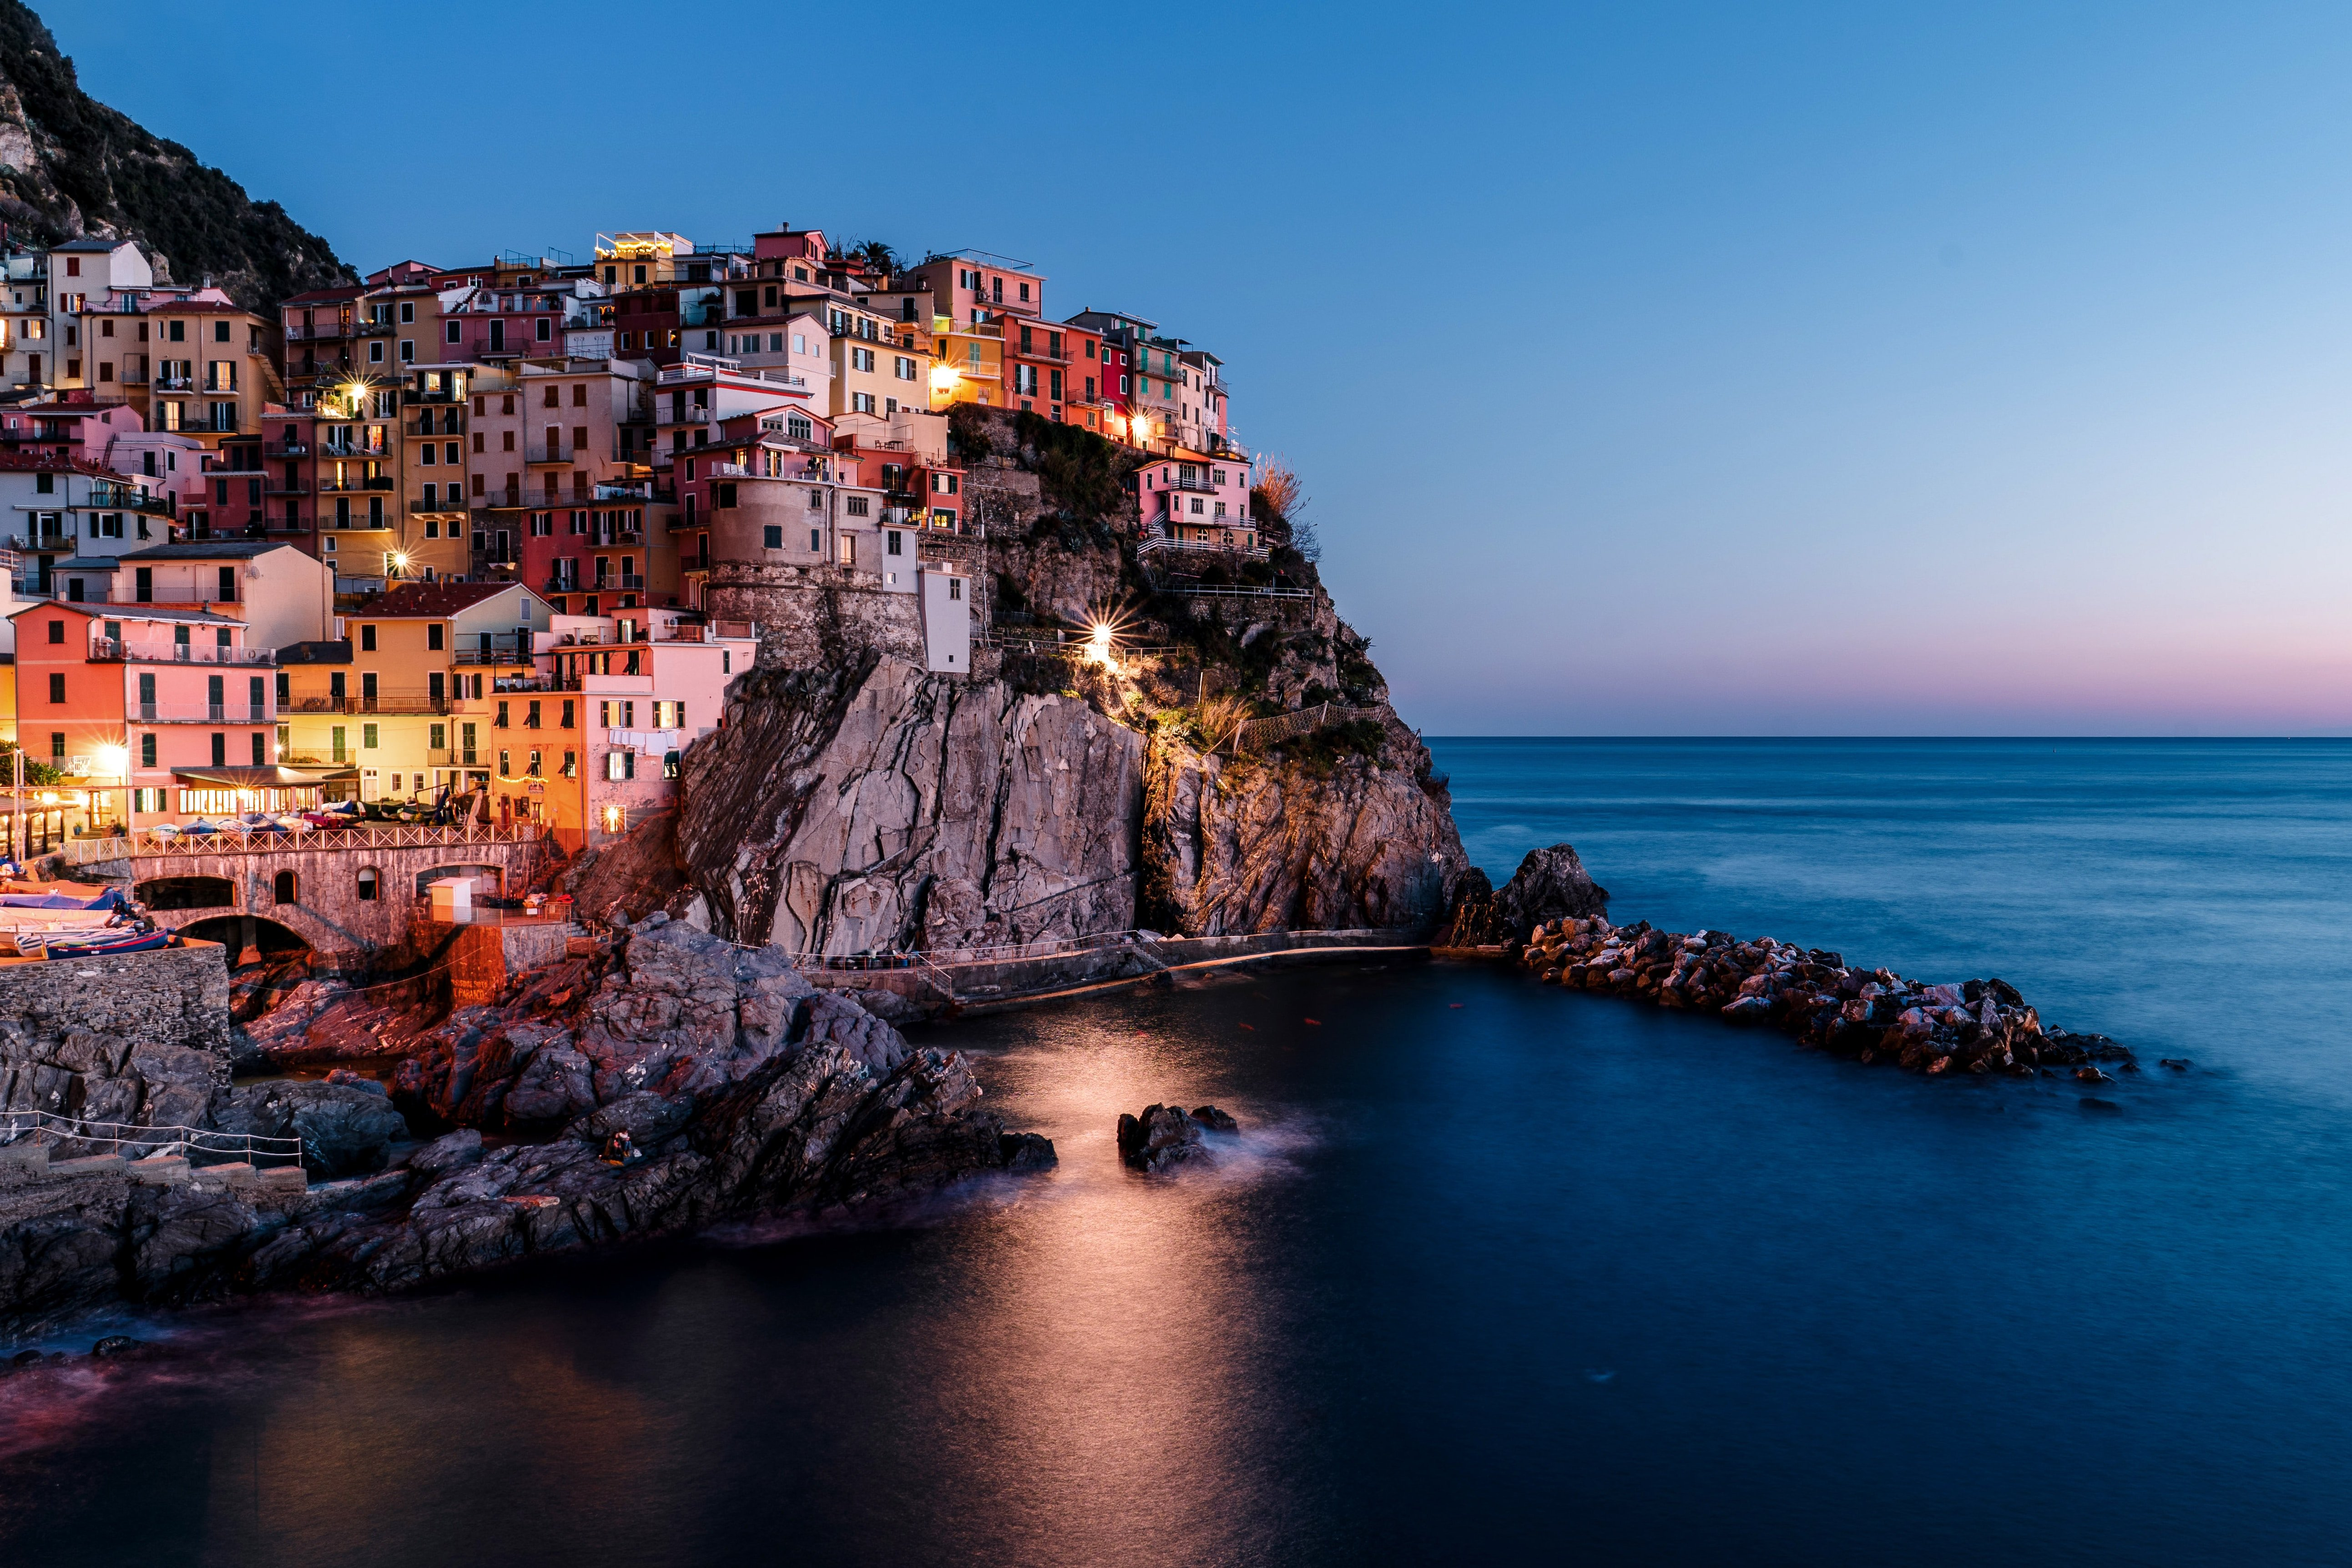 Manarola Italy Sunset on a Cycling and Photography Tour with Kevin Wenning and Intentionally Lost